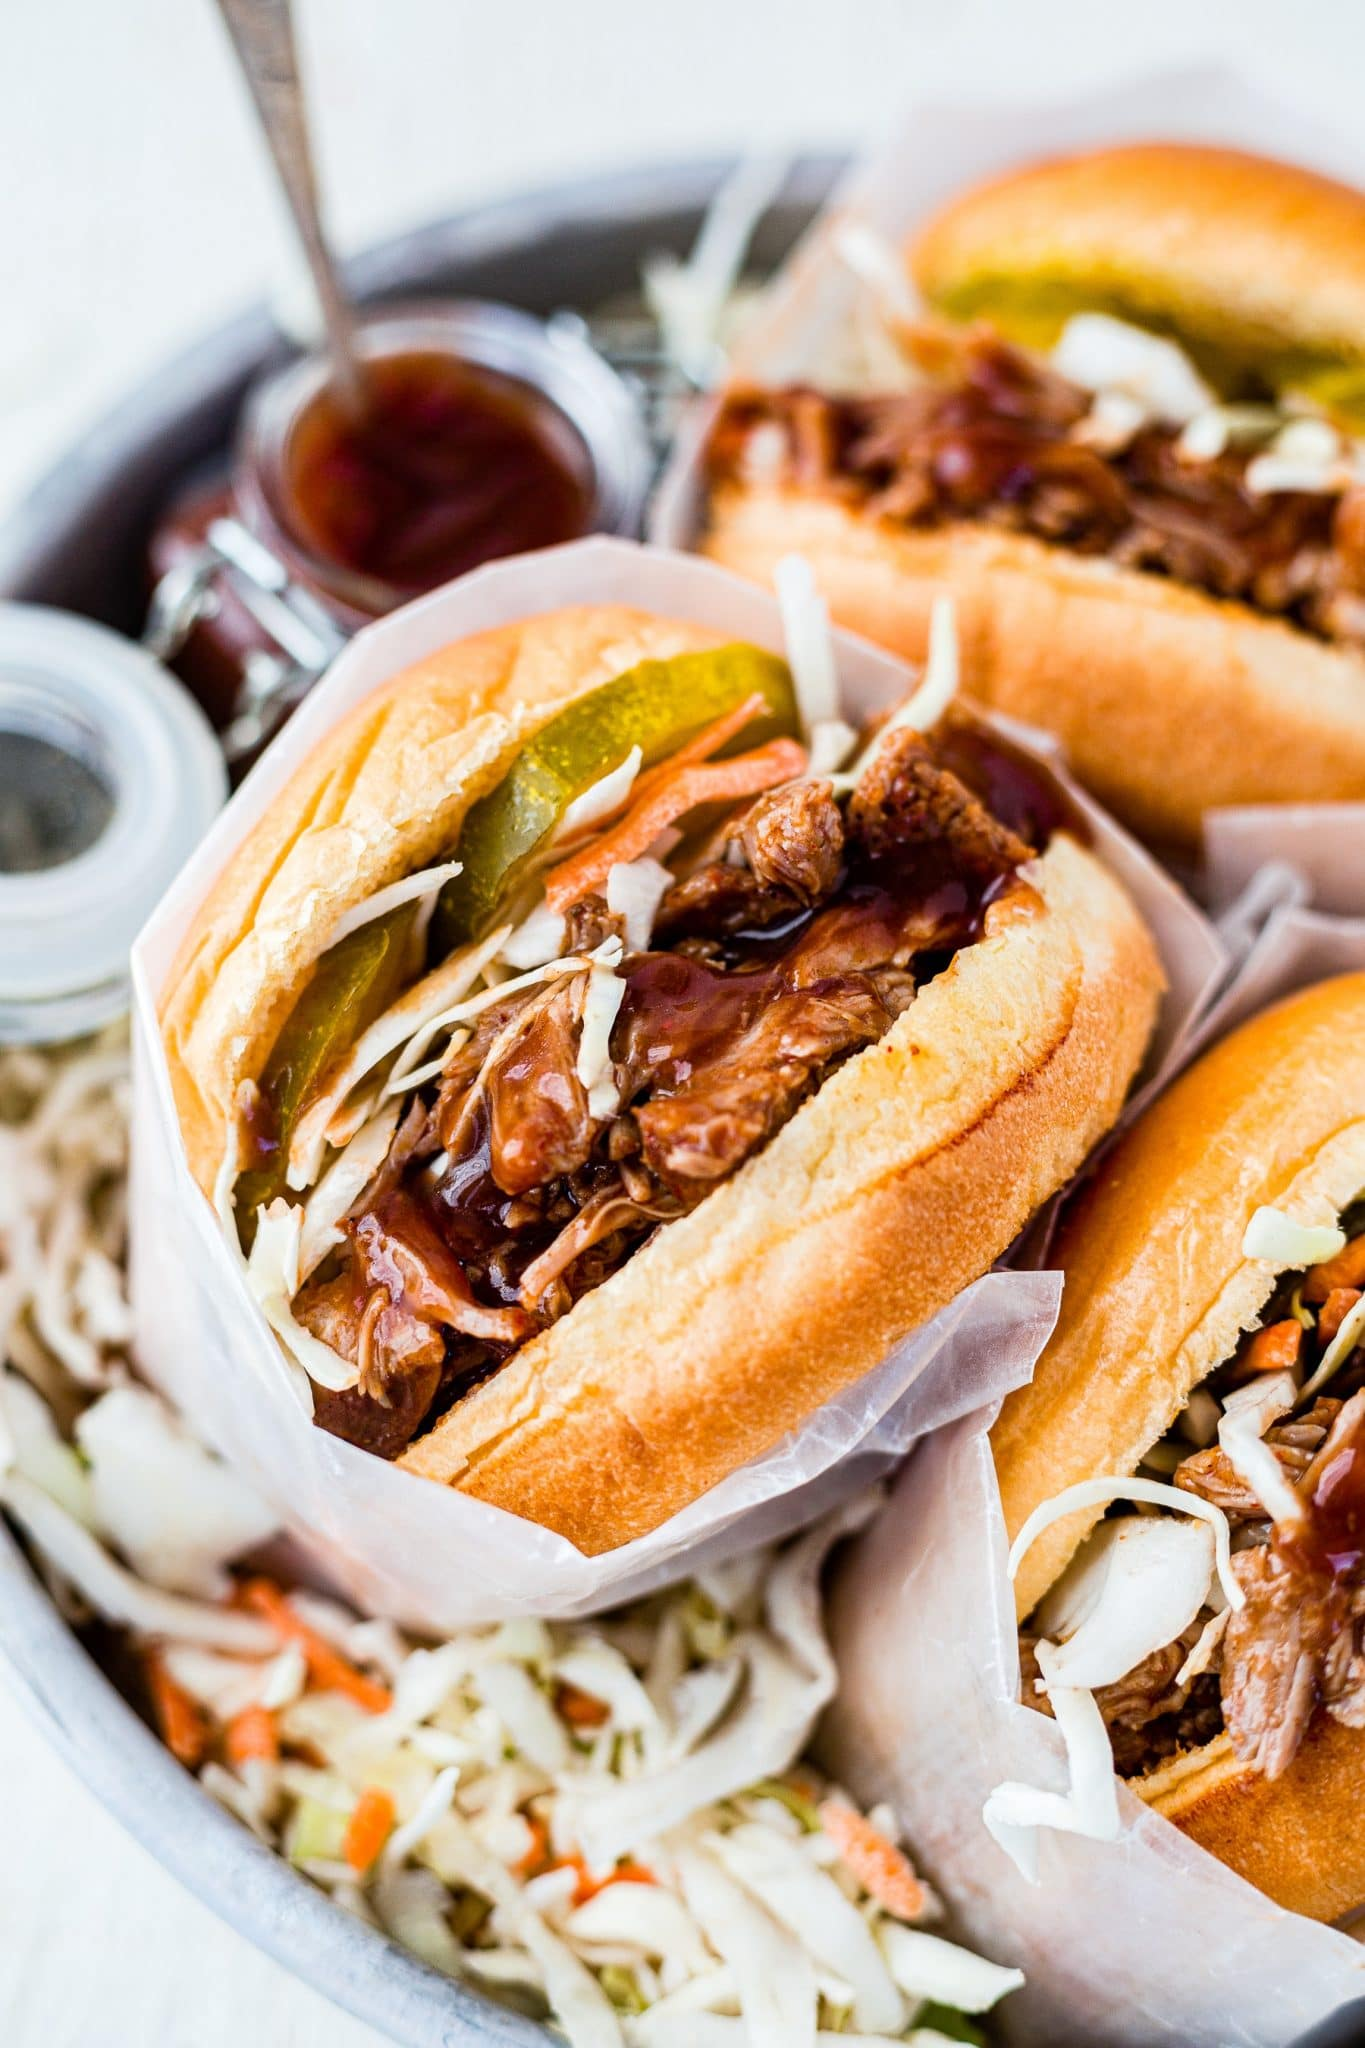 instant pot pulled pork sandwich topped with coleslaw and pickles and wrapped in parchment paper to serve